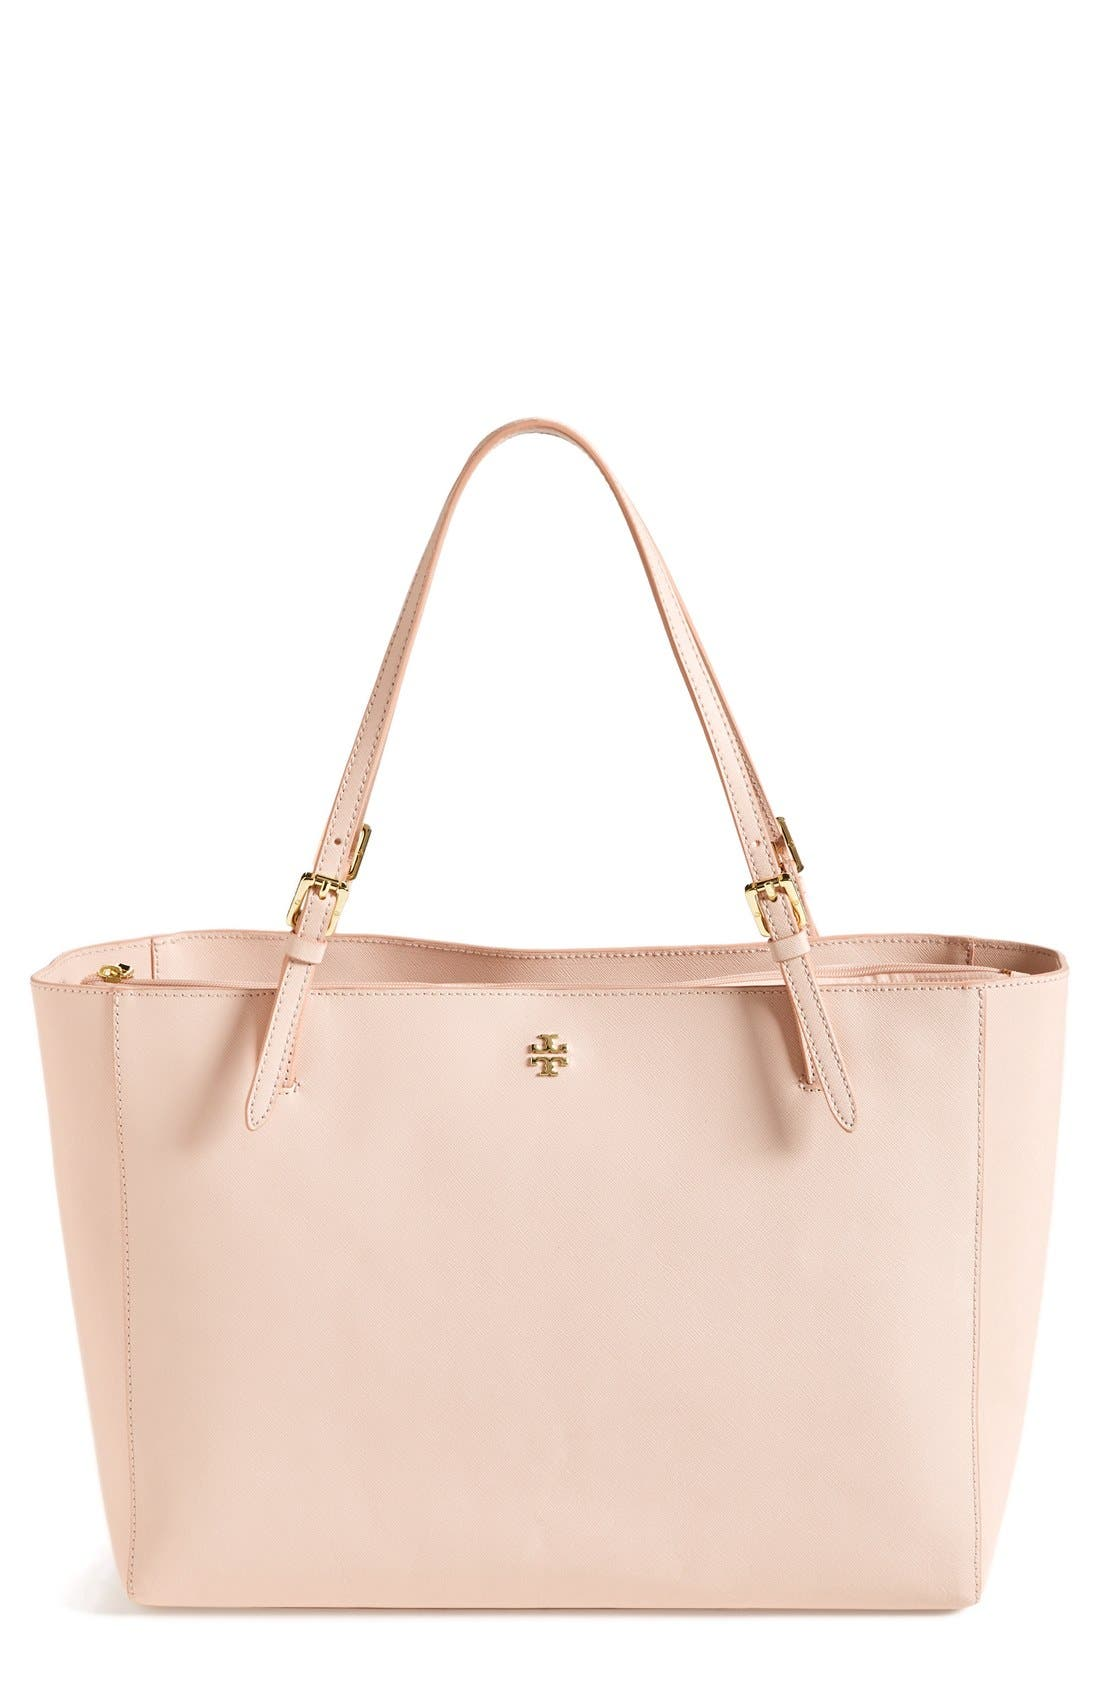 Alternate Image 1 Selected - Tory Burch 'York' Buckle Tote